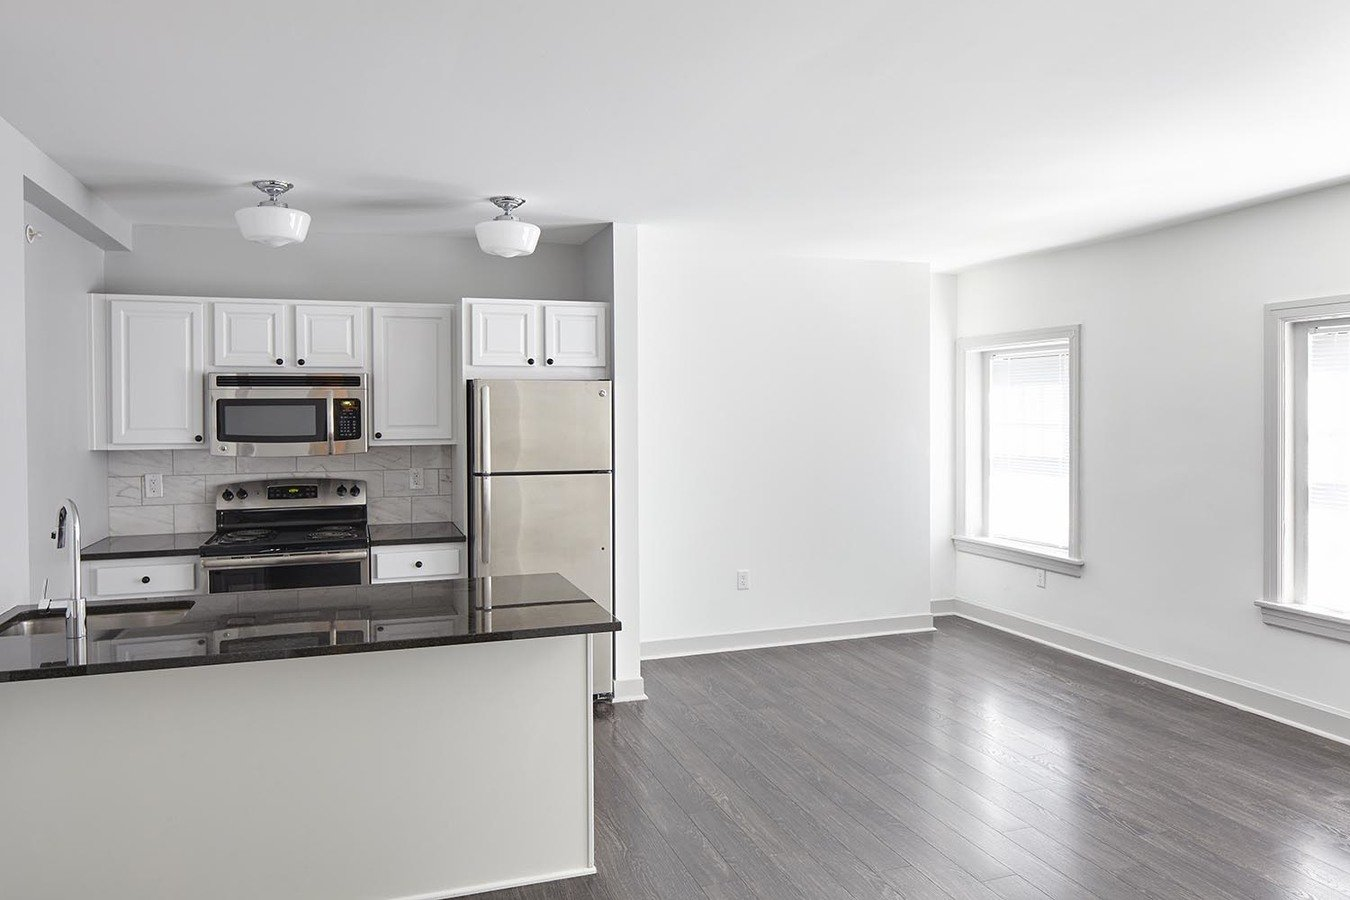 Studio 1 Bathroom Apartment for rent at The Newbern in Kansas City, MO